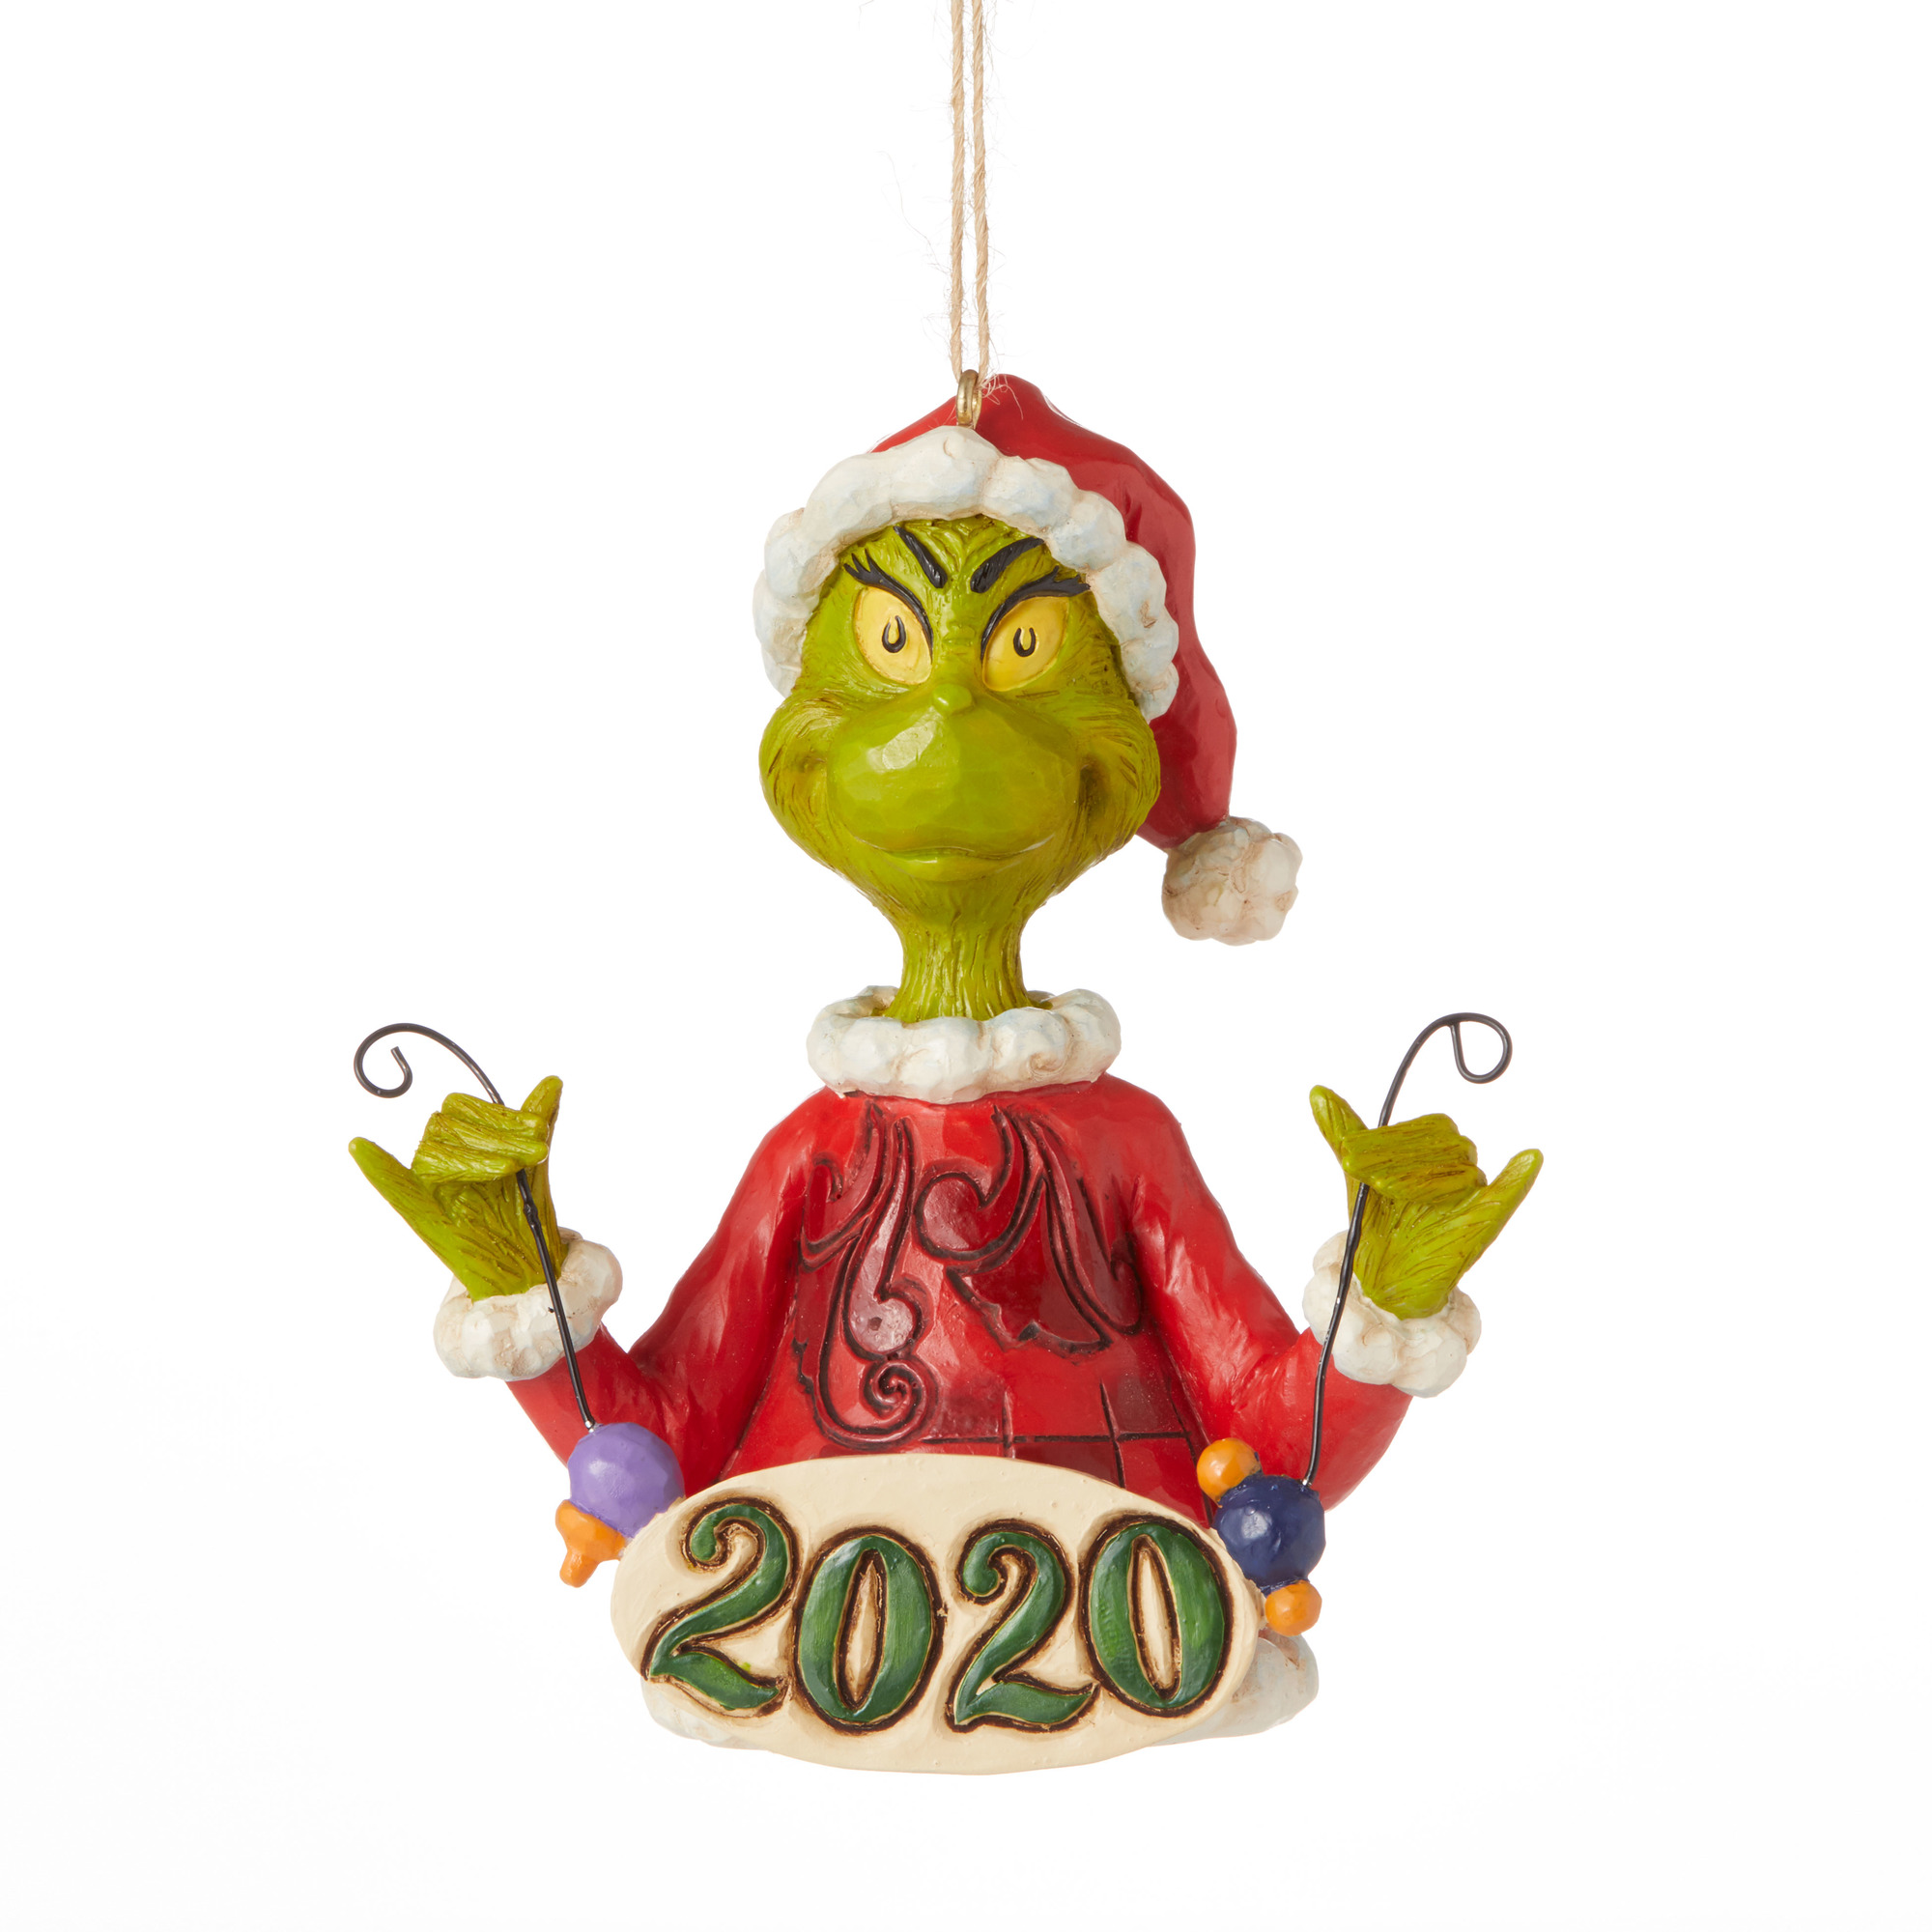 Jim Shore The Grinch 2020 Dated Ornament Christmas Store